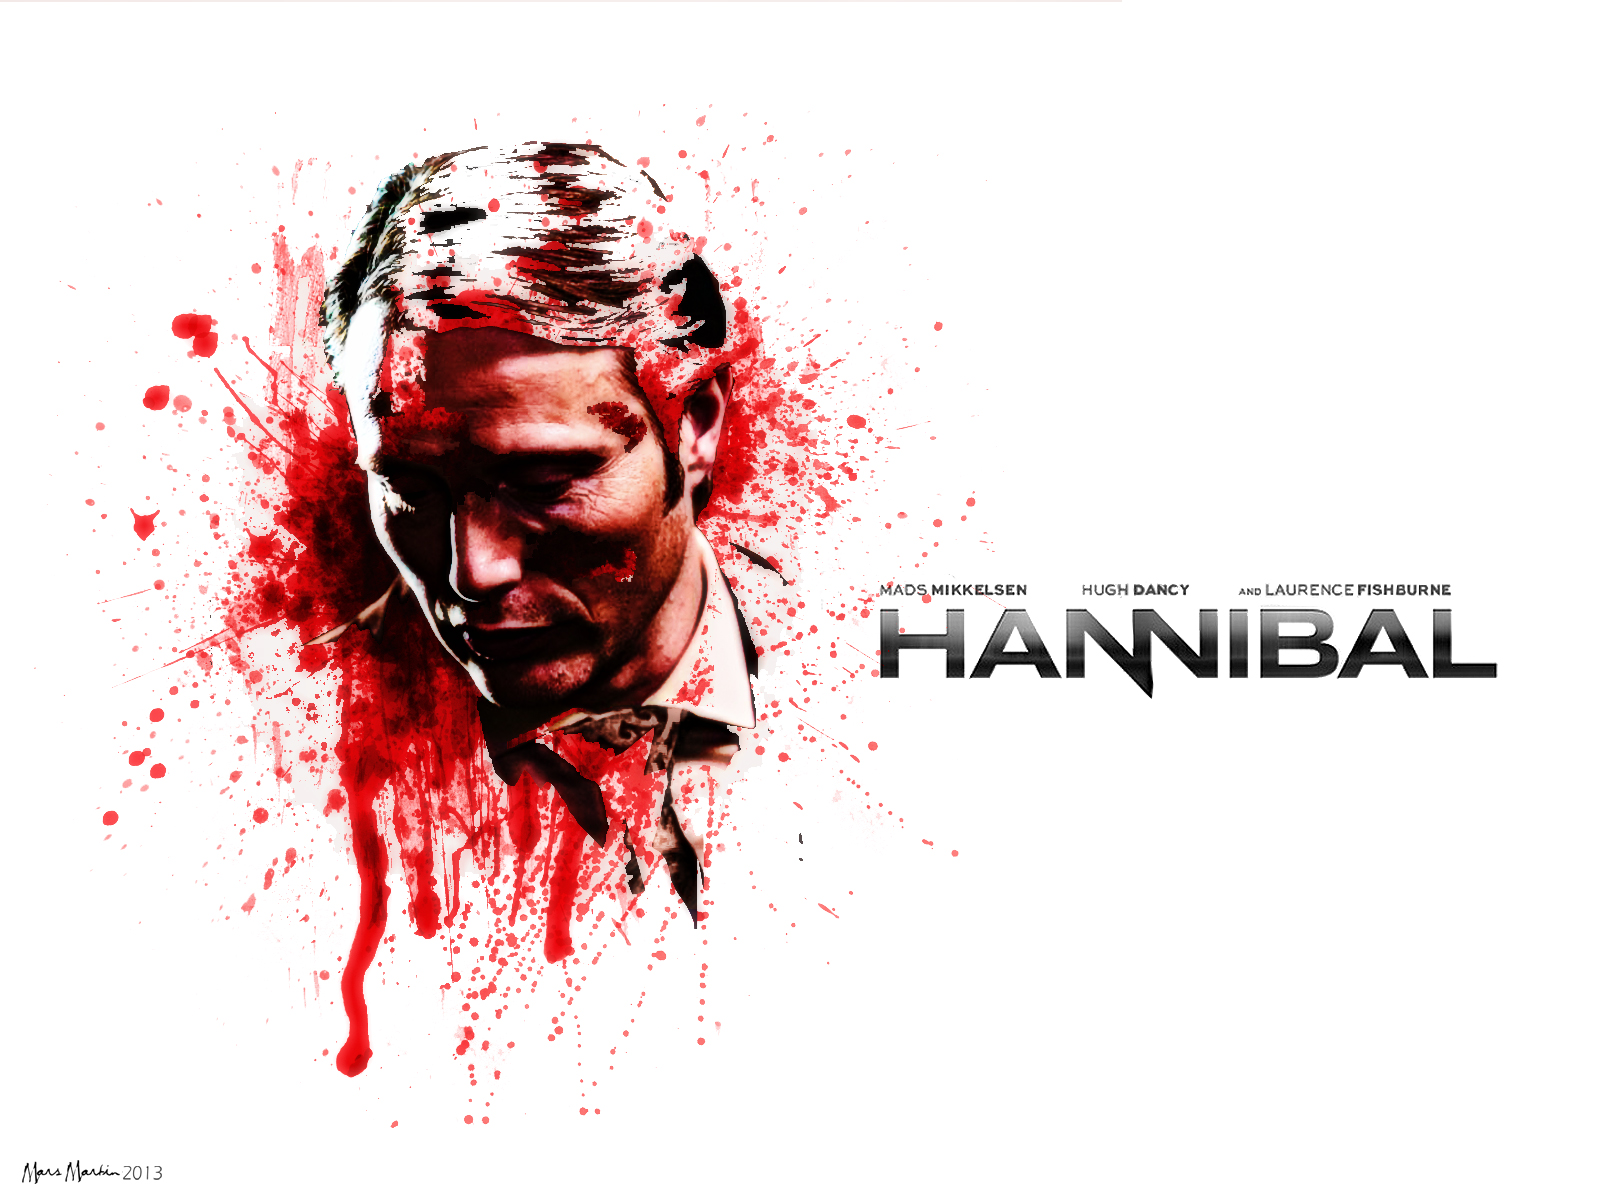 NBC Hannibal Wallpaper by thecannibalfactory 1600x1200